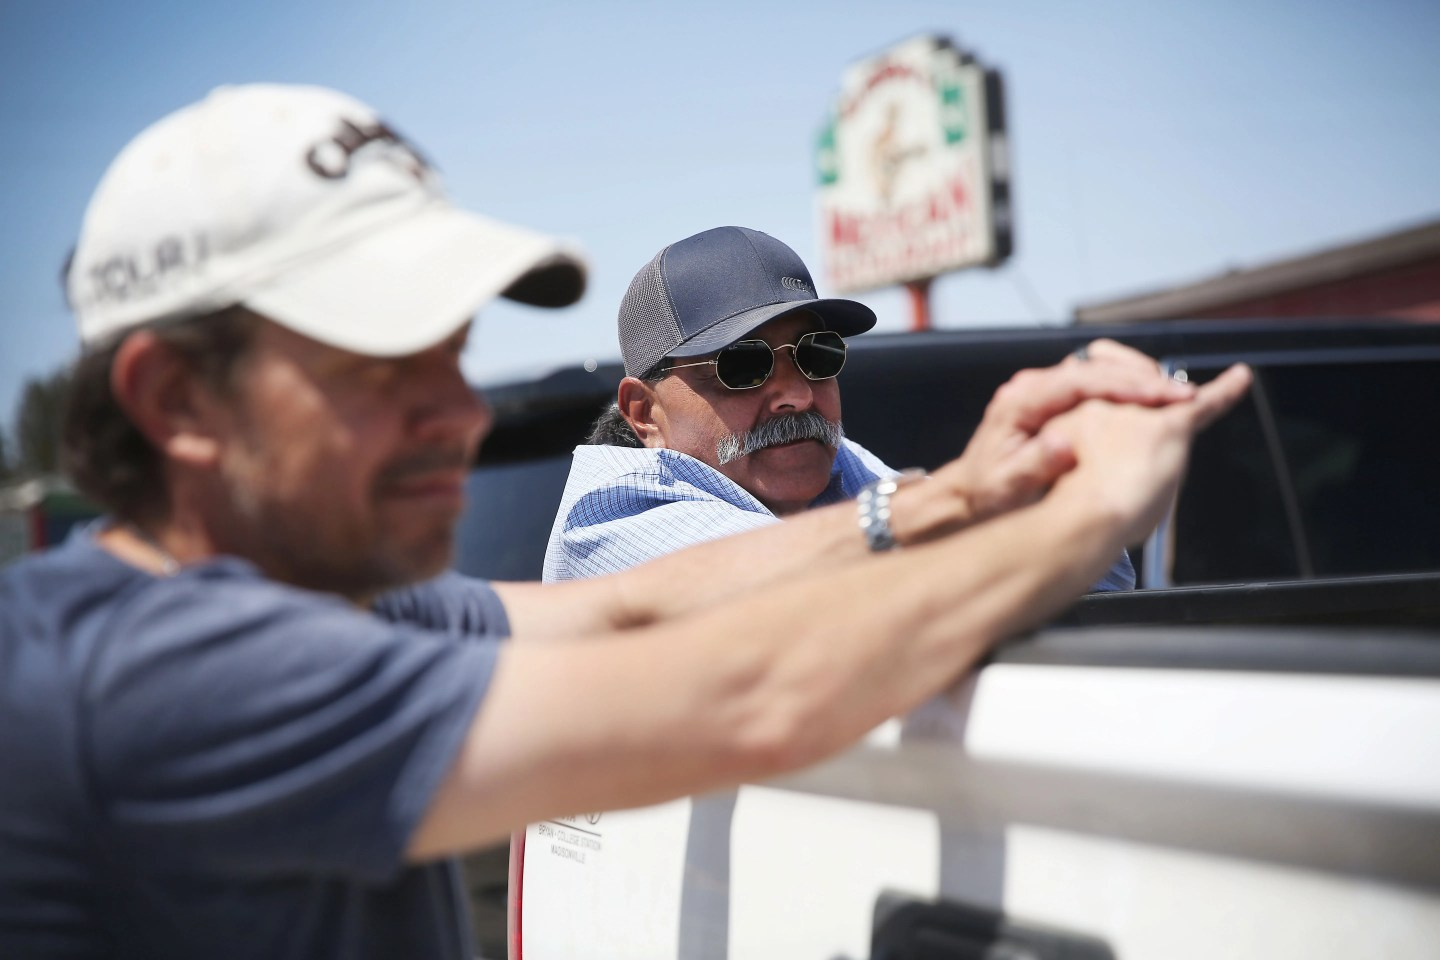 Richard Orona, right, and Bert Montee, left, talk about what they have heard about the migrant children shelter Friday, April 9, 2021, outside of Alfredo's Mexican Restaurant in Pecos. Orona and Montee work for a pipeline construction company out of Giddings.